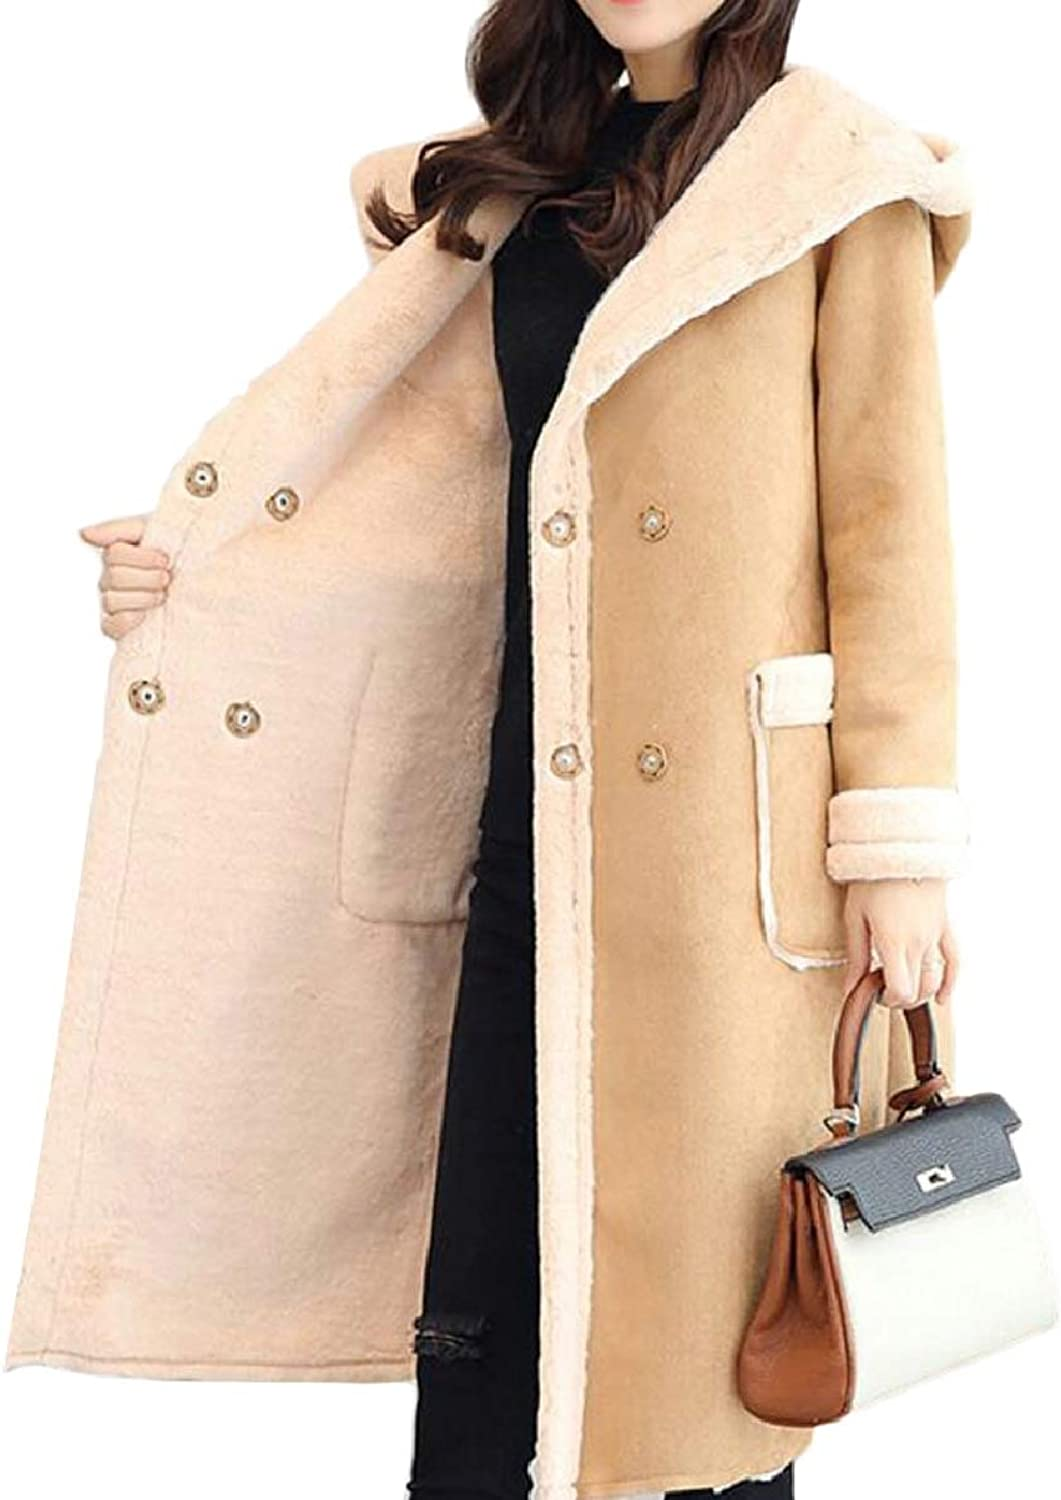 CBTLVSN Womens Comfy Warm Thicken Hoodie Faux Long Suede Lamb Wool Jacket